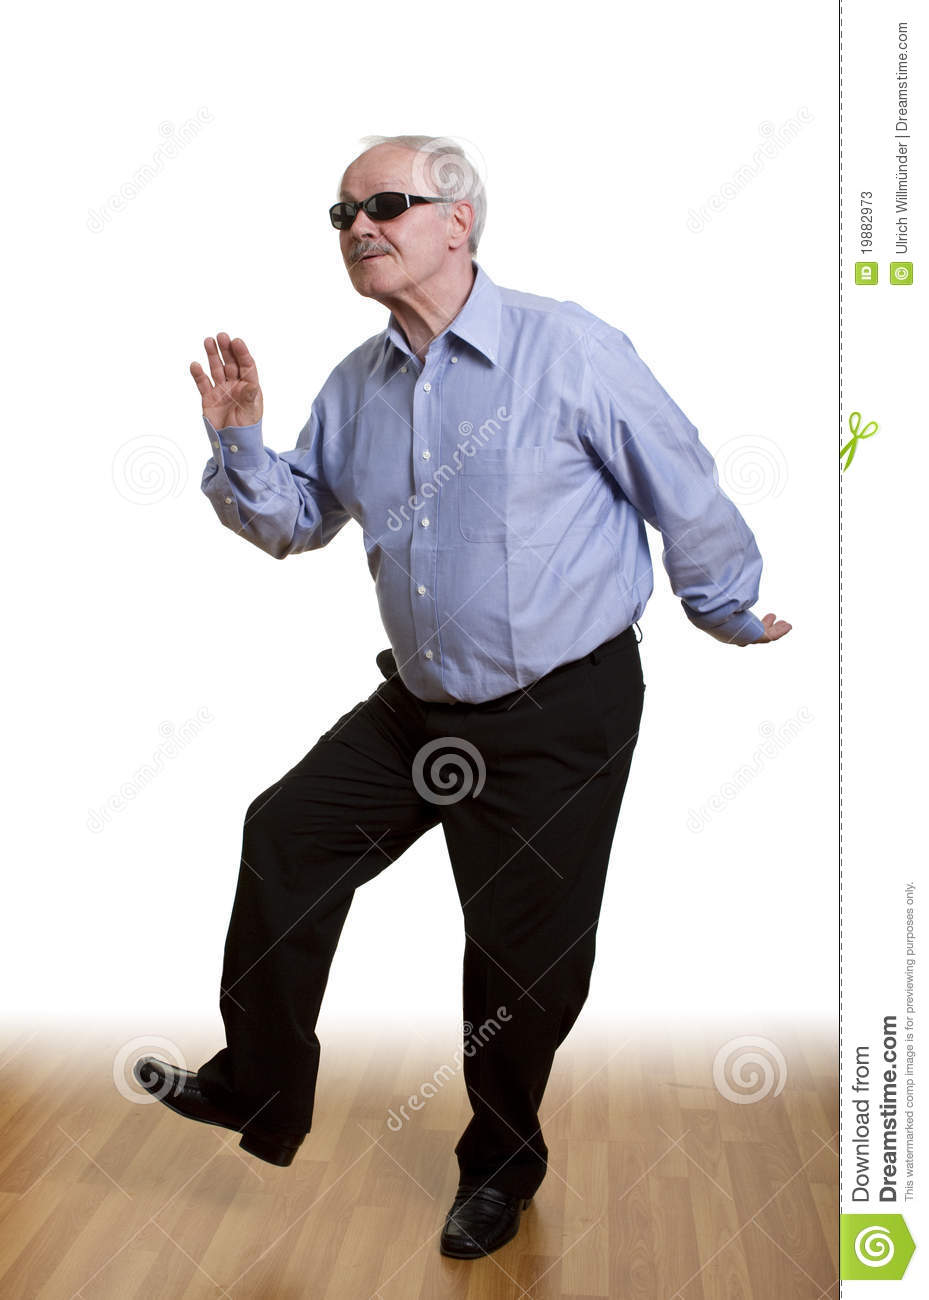 young at heart senior man dancing alone, isolated on white. Vacuum Clipart Black And White